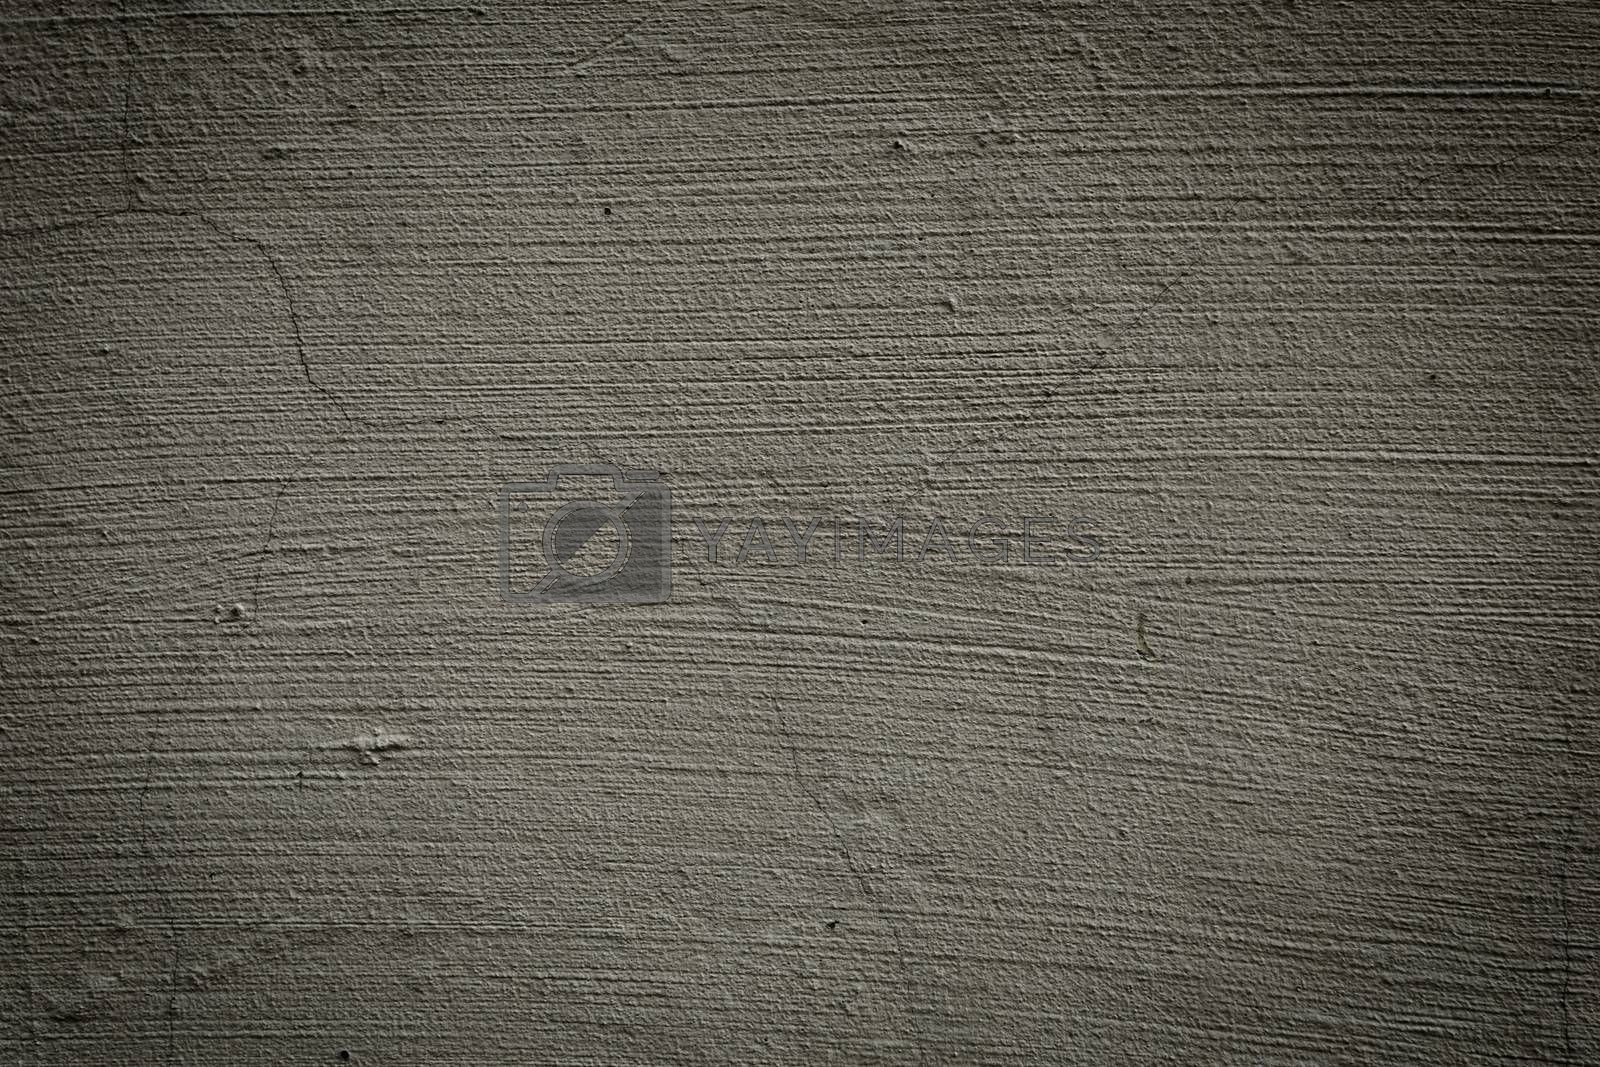 Black and white stone grunge background wall texture by RTsubin